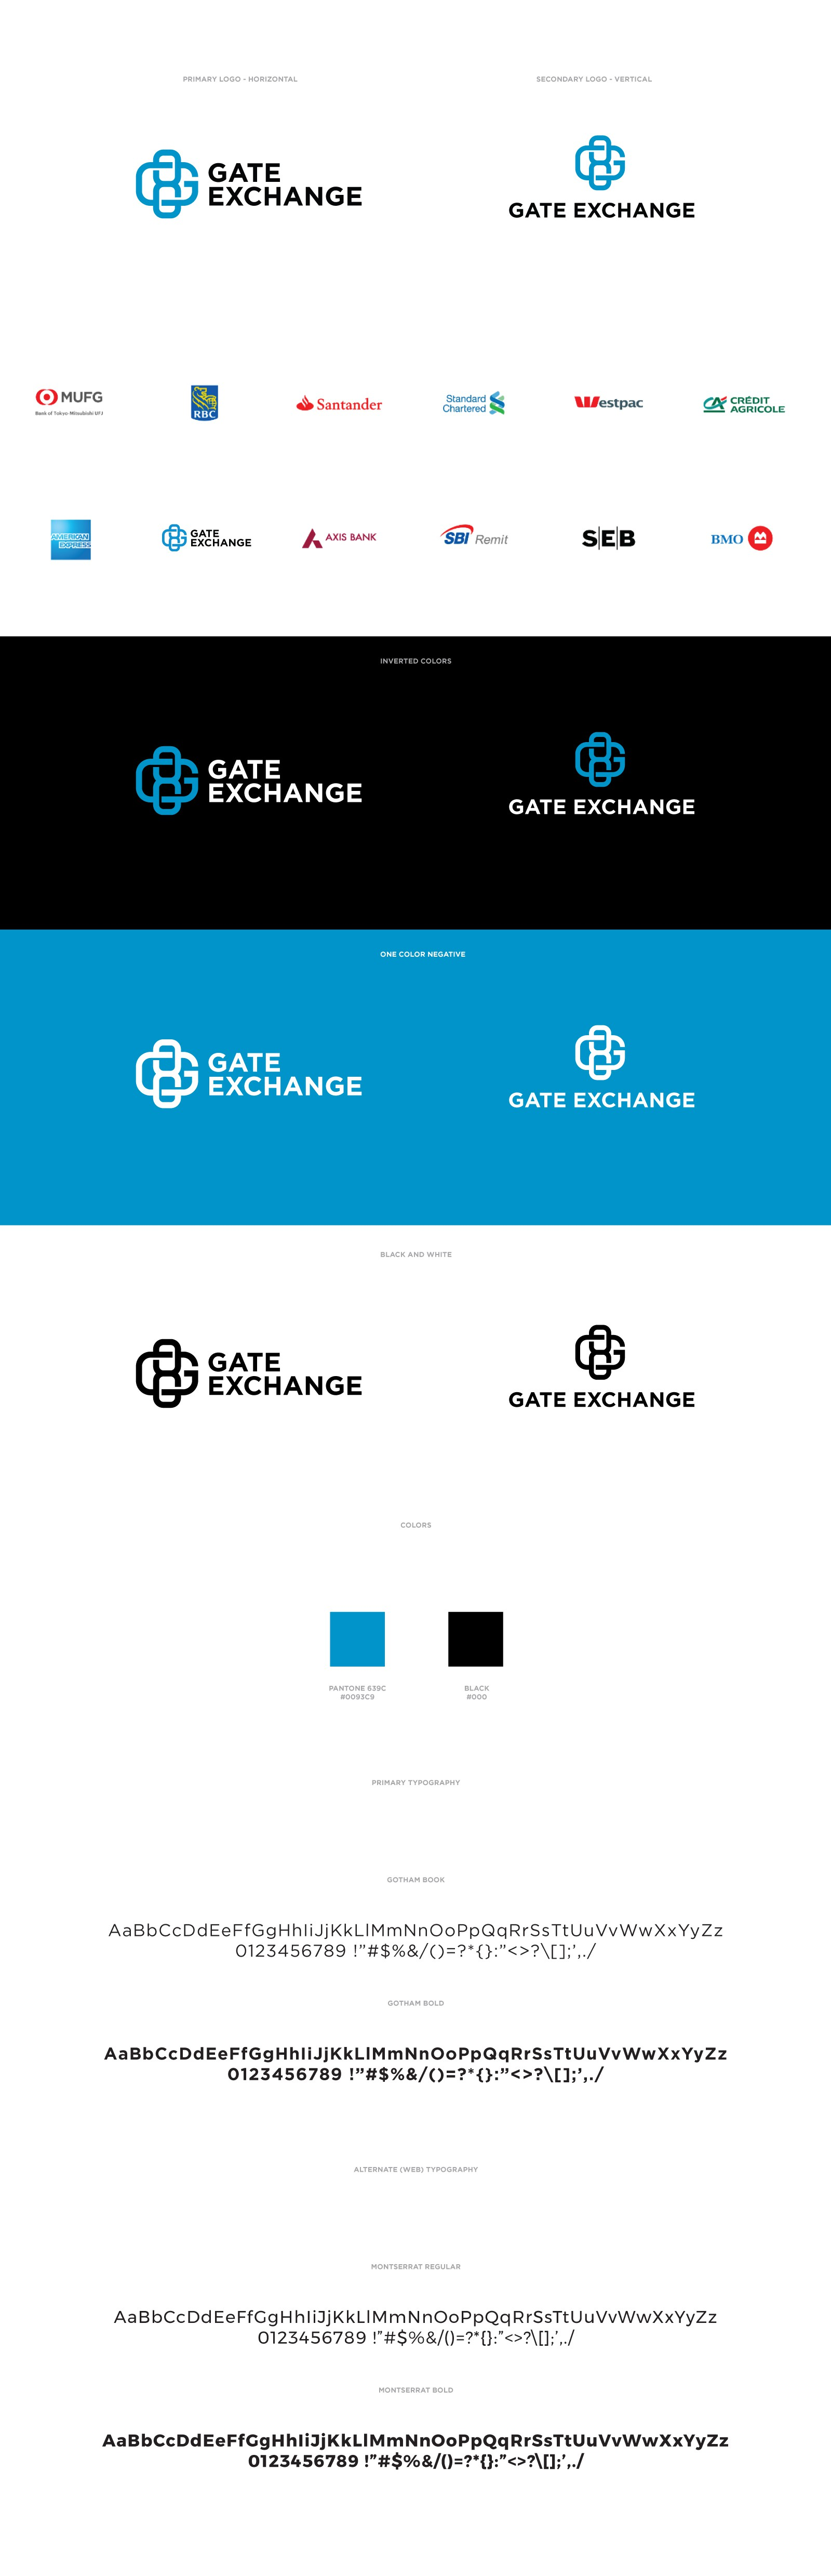 Symbolic geometric logo for digital currency exchange